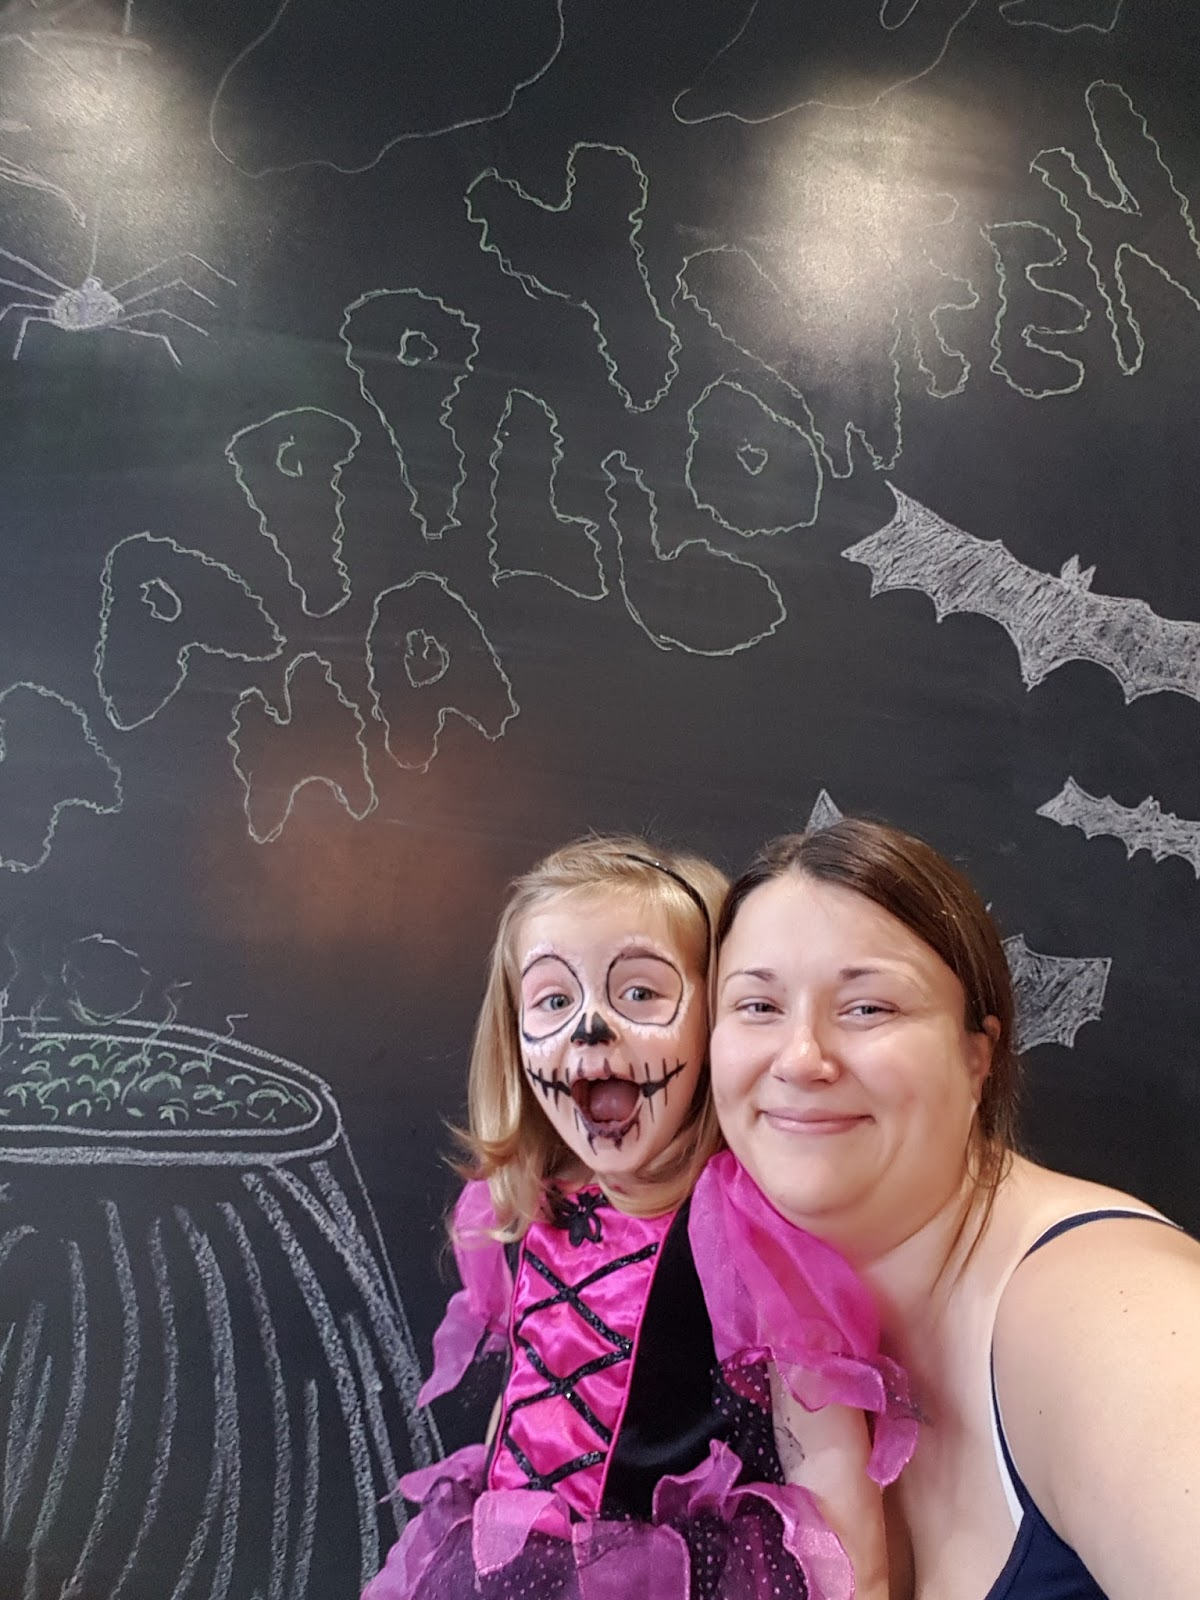 young girl in a halloween costume in front of blackboard art wall